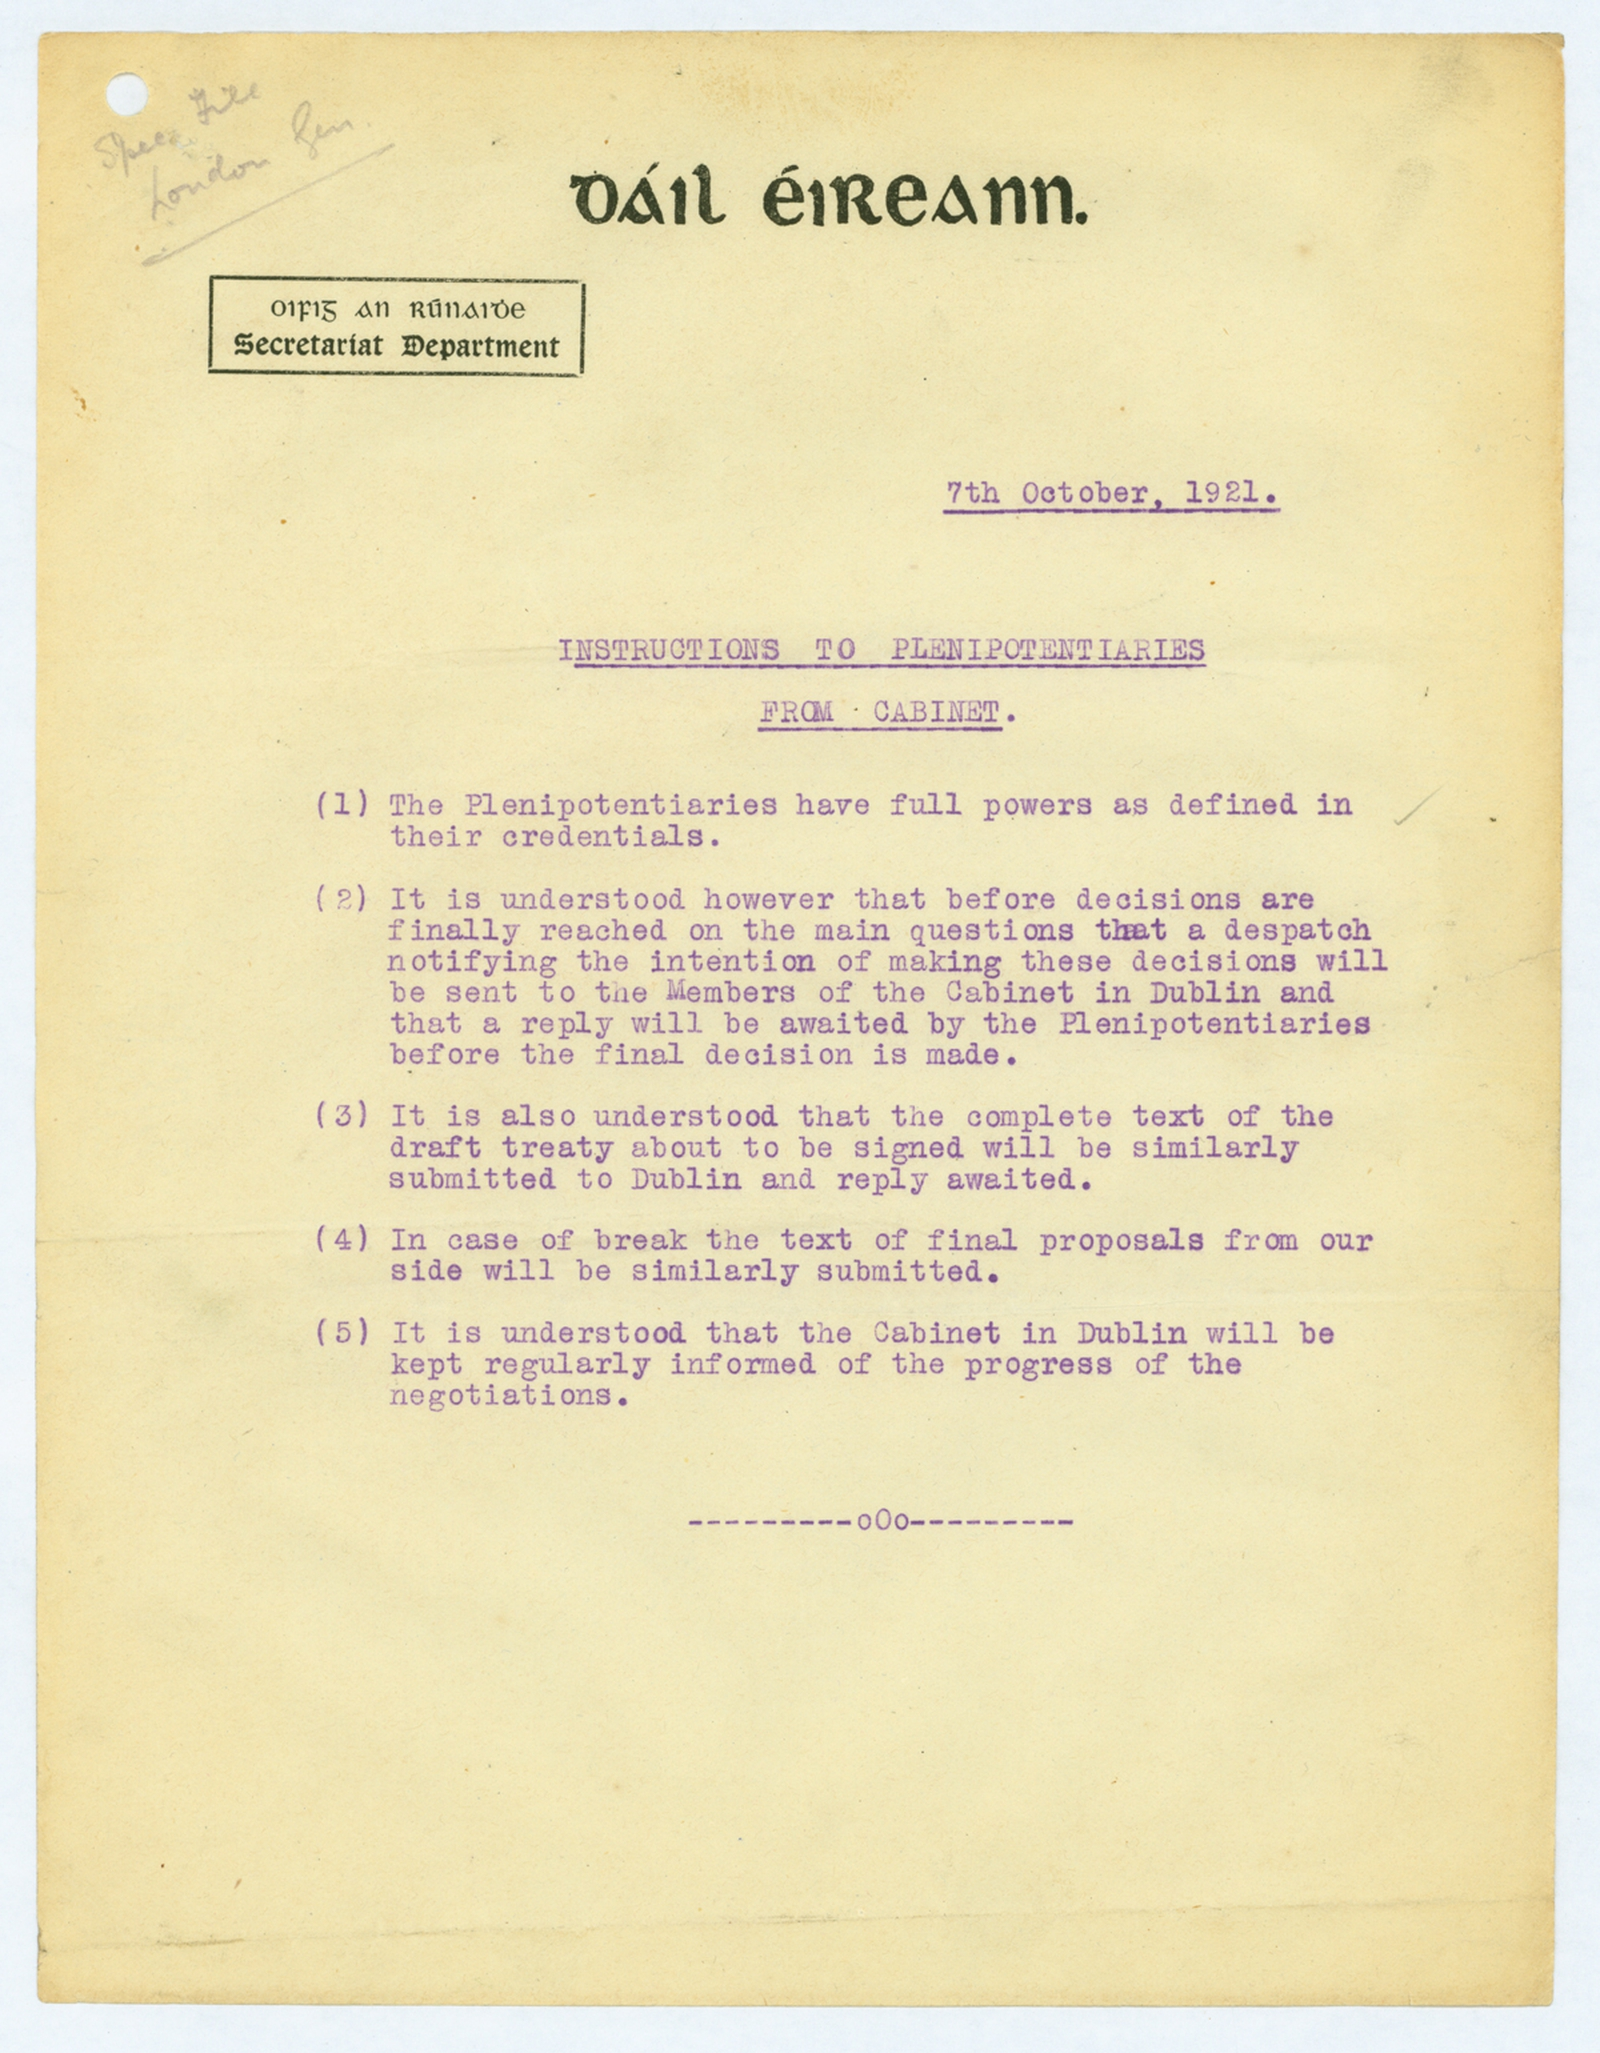 Image - De Valera believed the instructions to the delegates couldn't be clearer: sign nothing before referring back to Dublin (Credit: By kind permission of the National Archives)